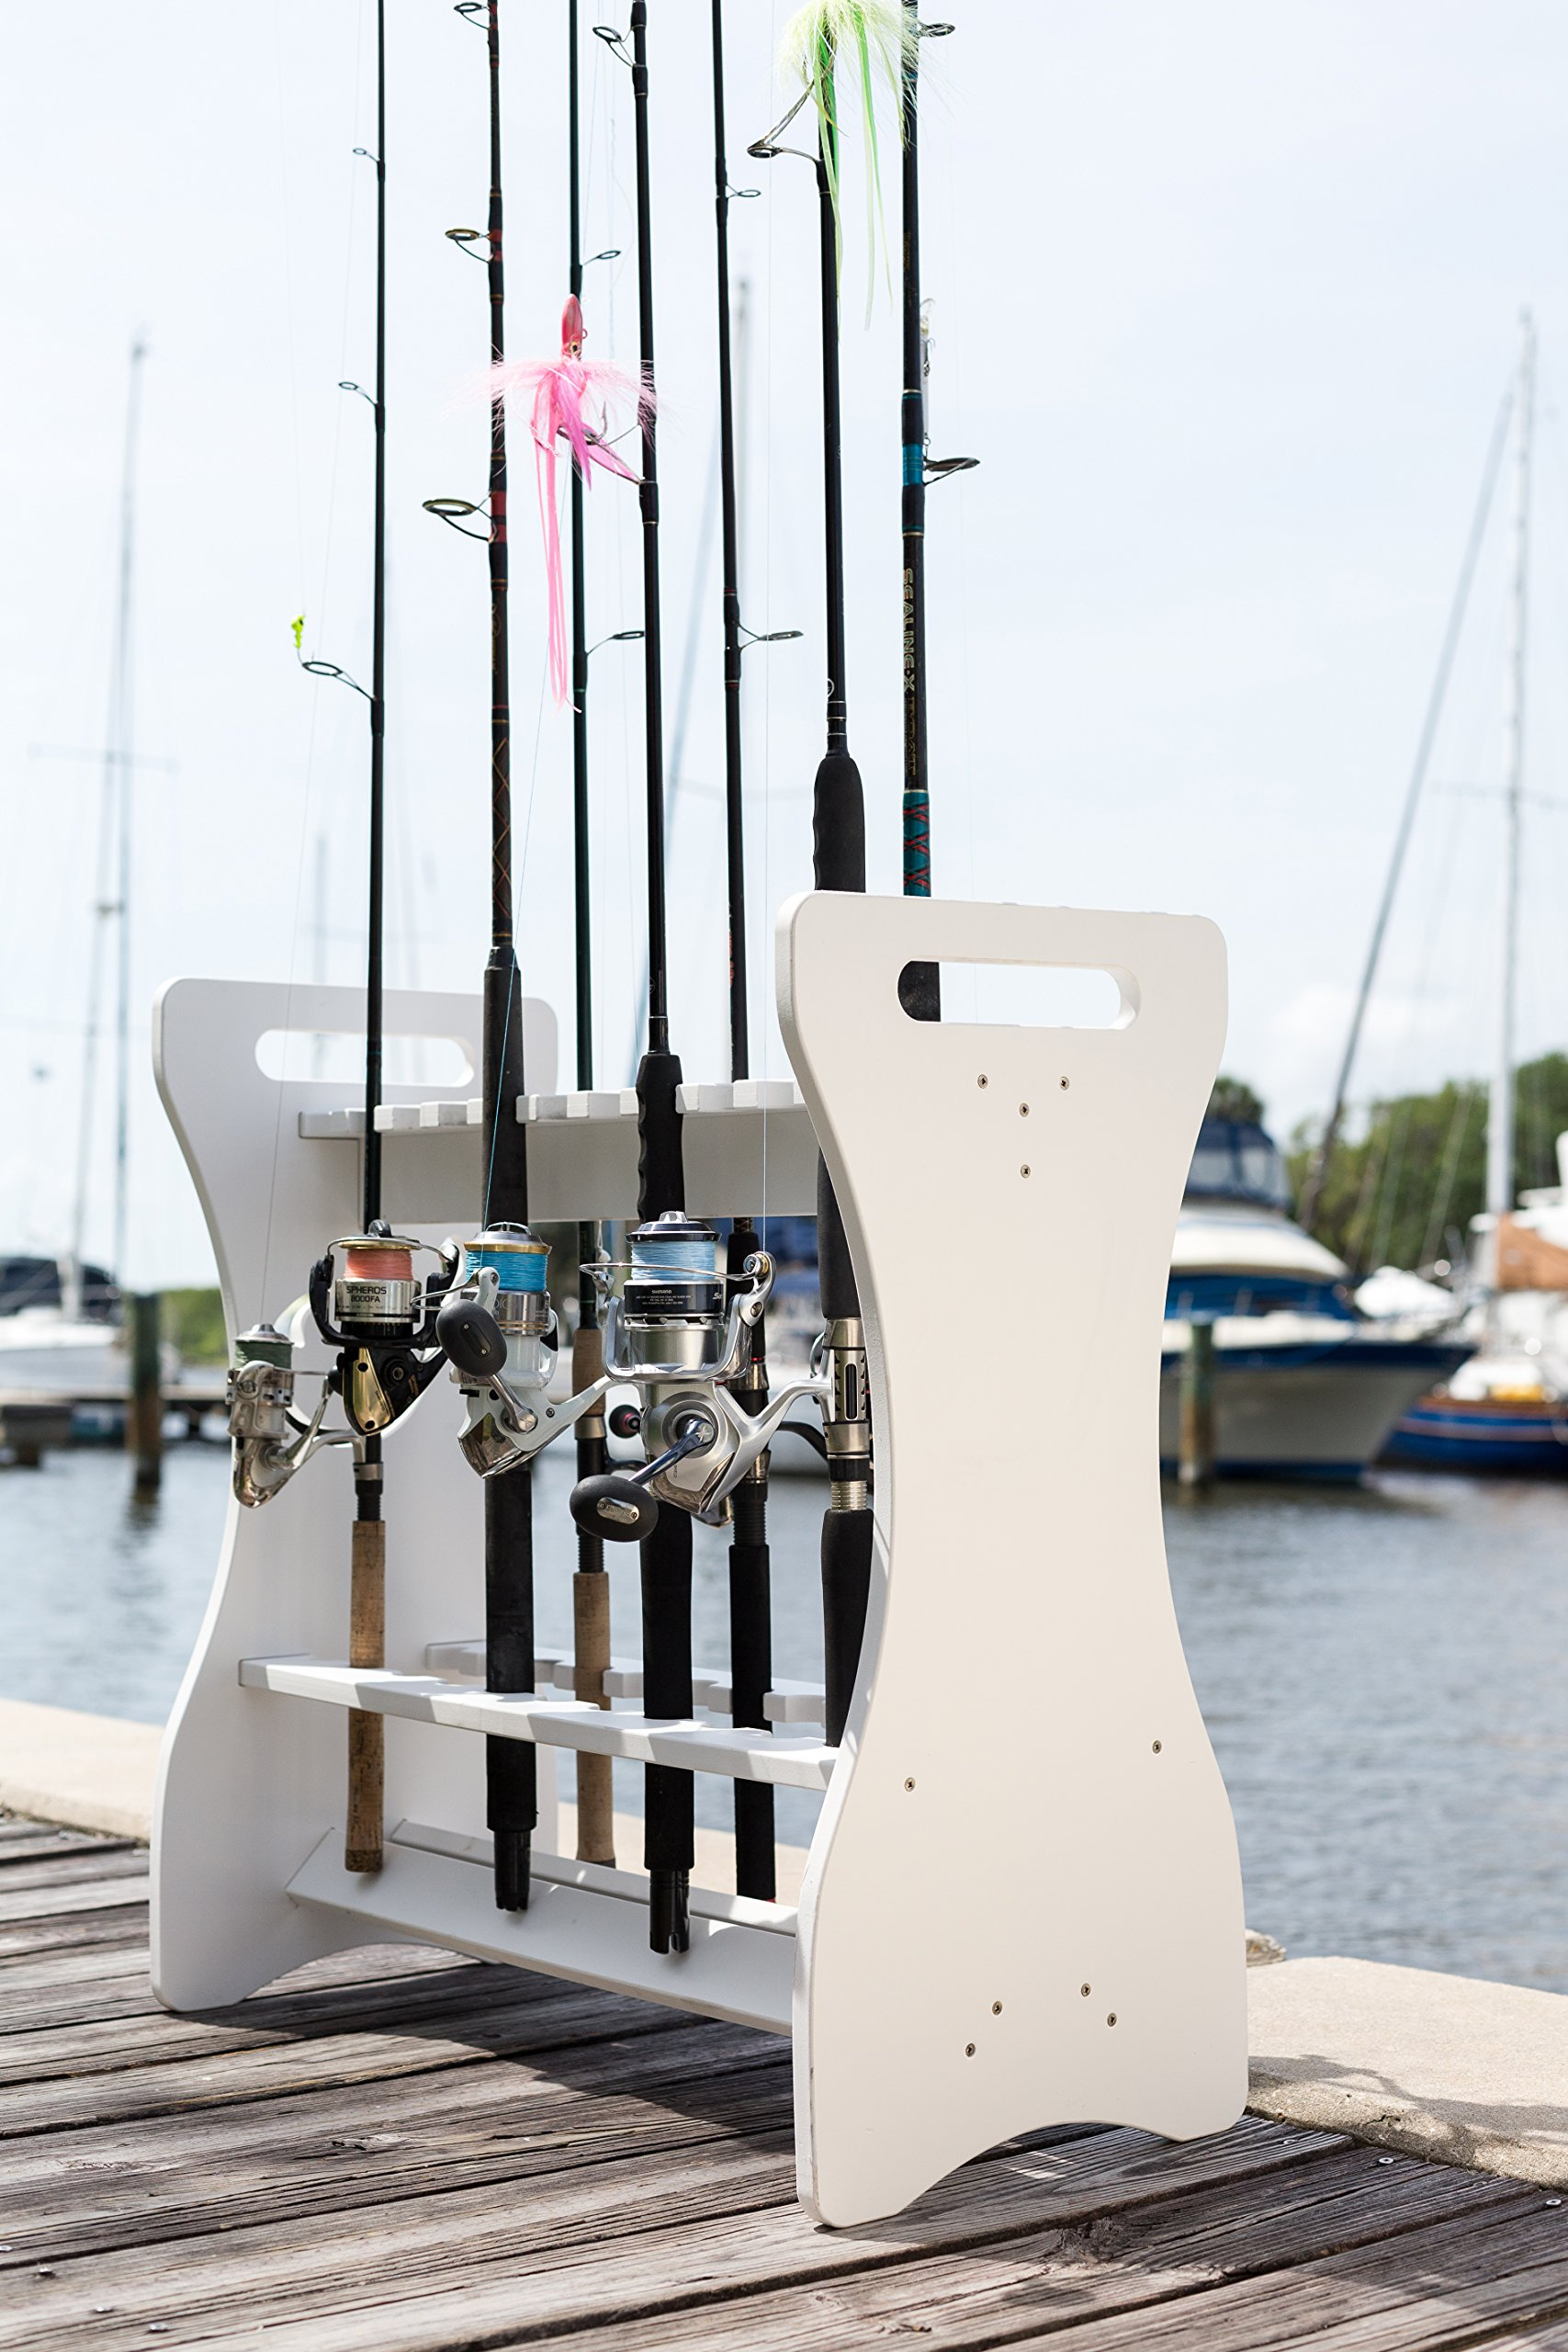 Fishing Rod Rack - Classic White - Store and Organize up to 24 Fishing Rods and Reels